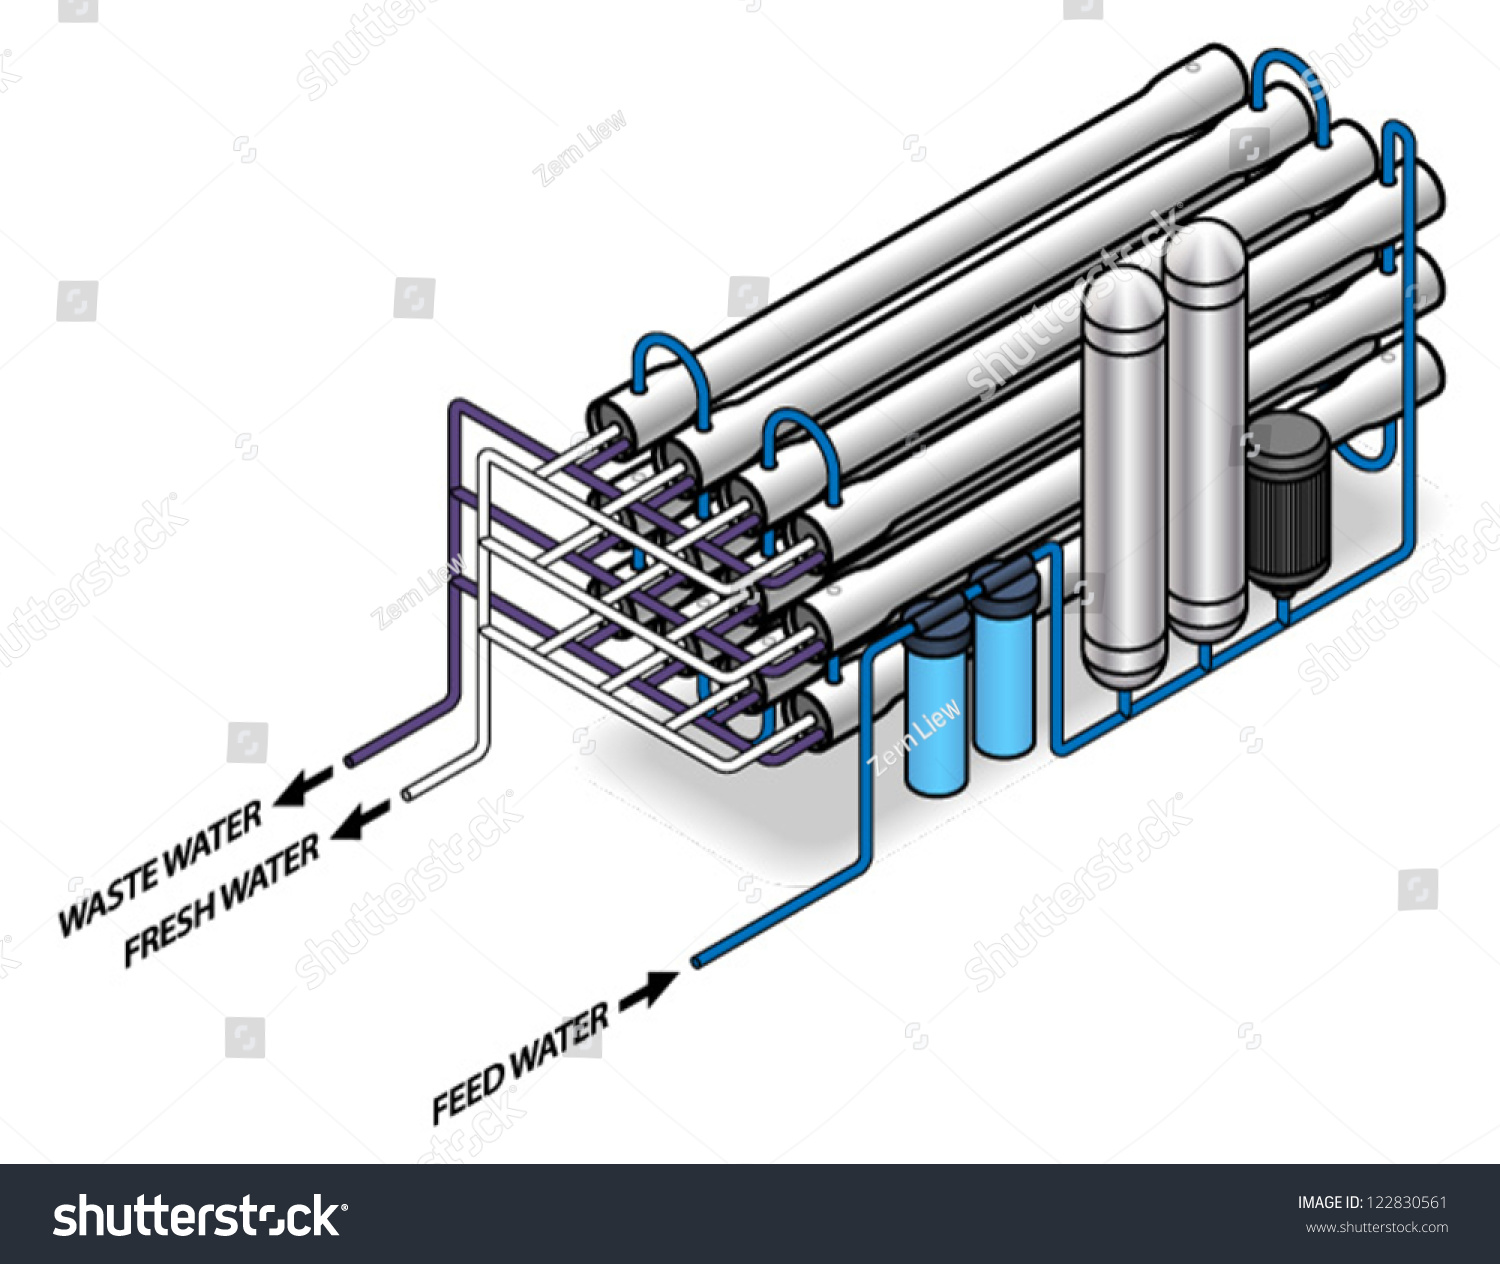 Reverse Osmosis Plant Diagram Trusted Wiring Process Flow Water Purification Desalination Stock Vector Under Sink